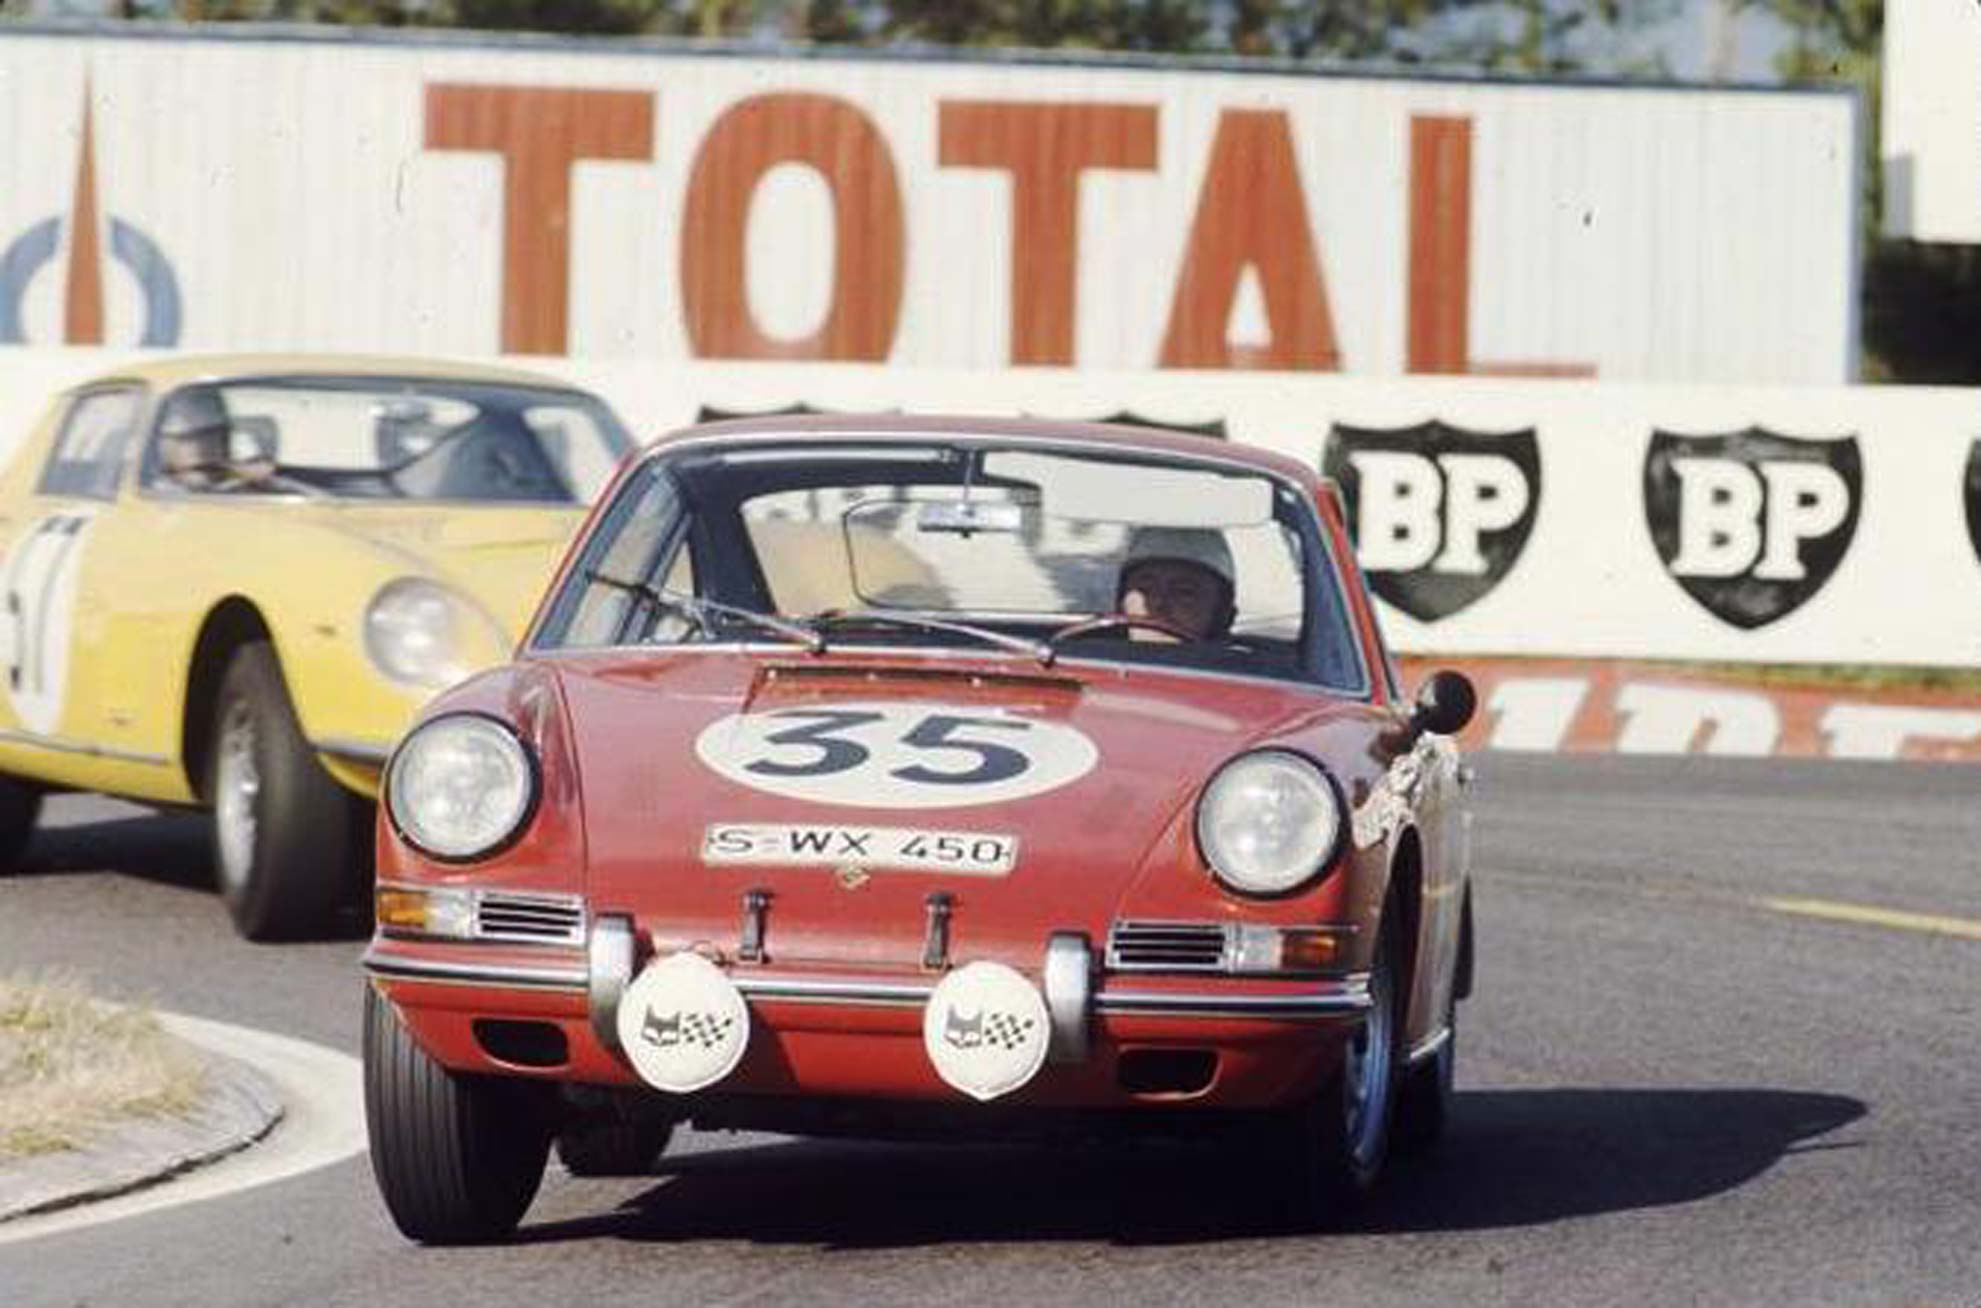 Chassis 303076 was the very first Porsche 911 to be driven at Le Mans in 1966 where it won the its class. The very same car had come home 3rd in class in the Monte Carlo rally six months earlier.